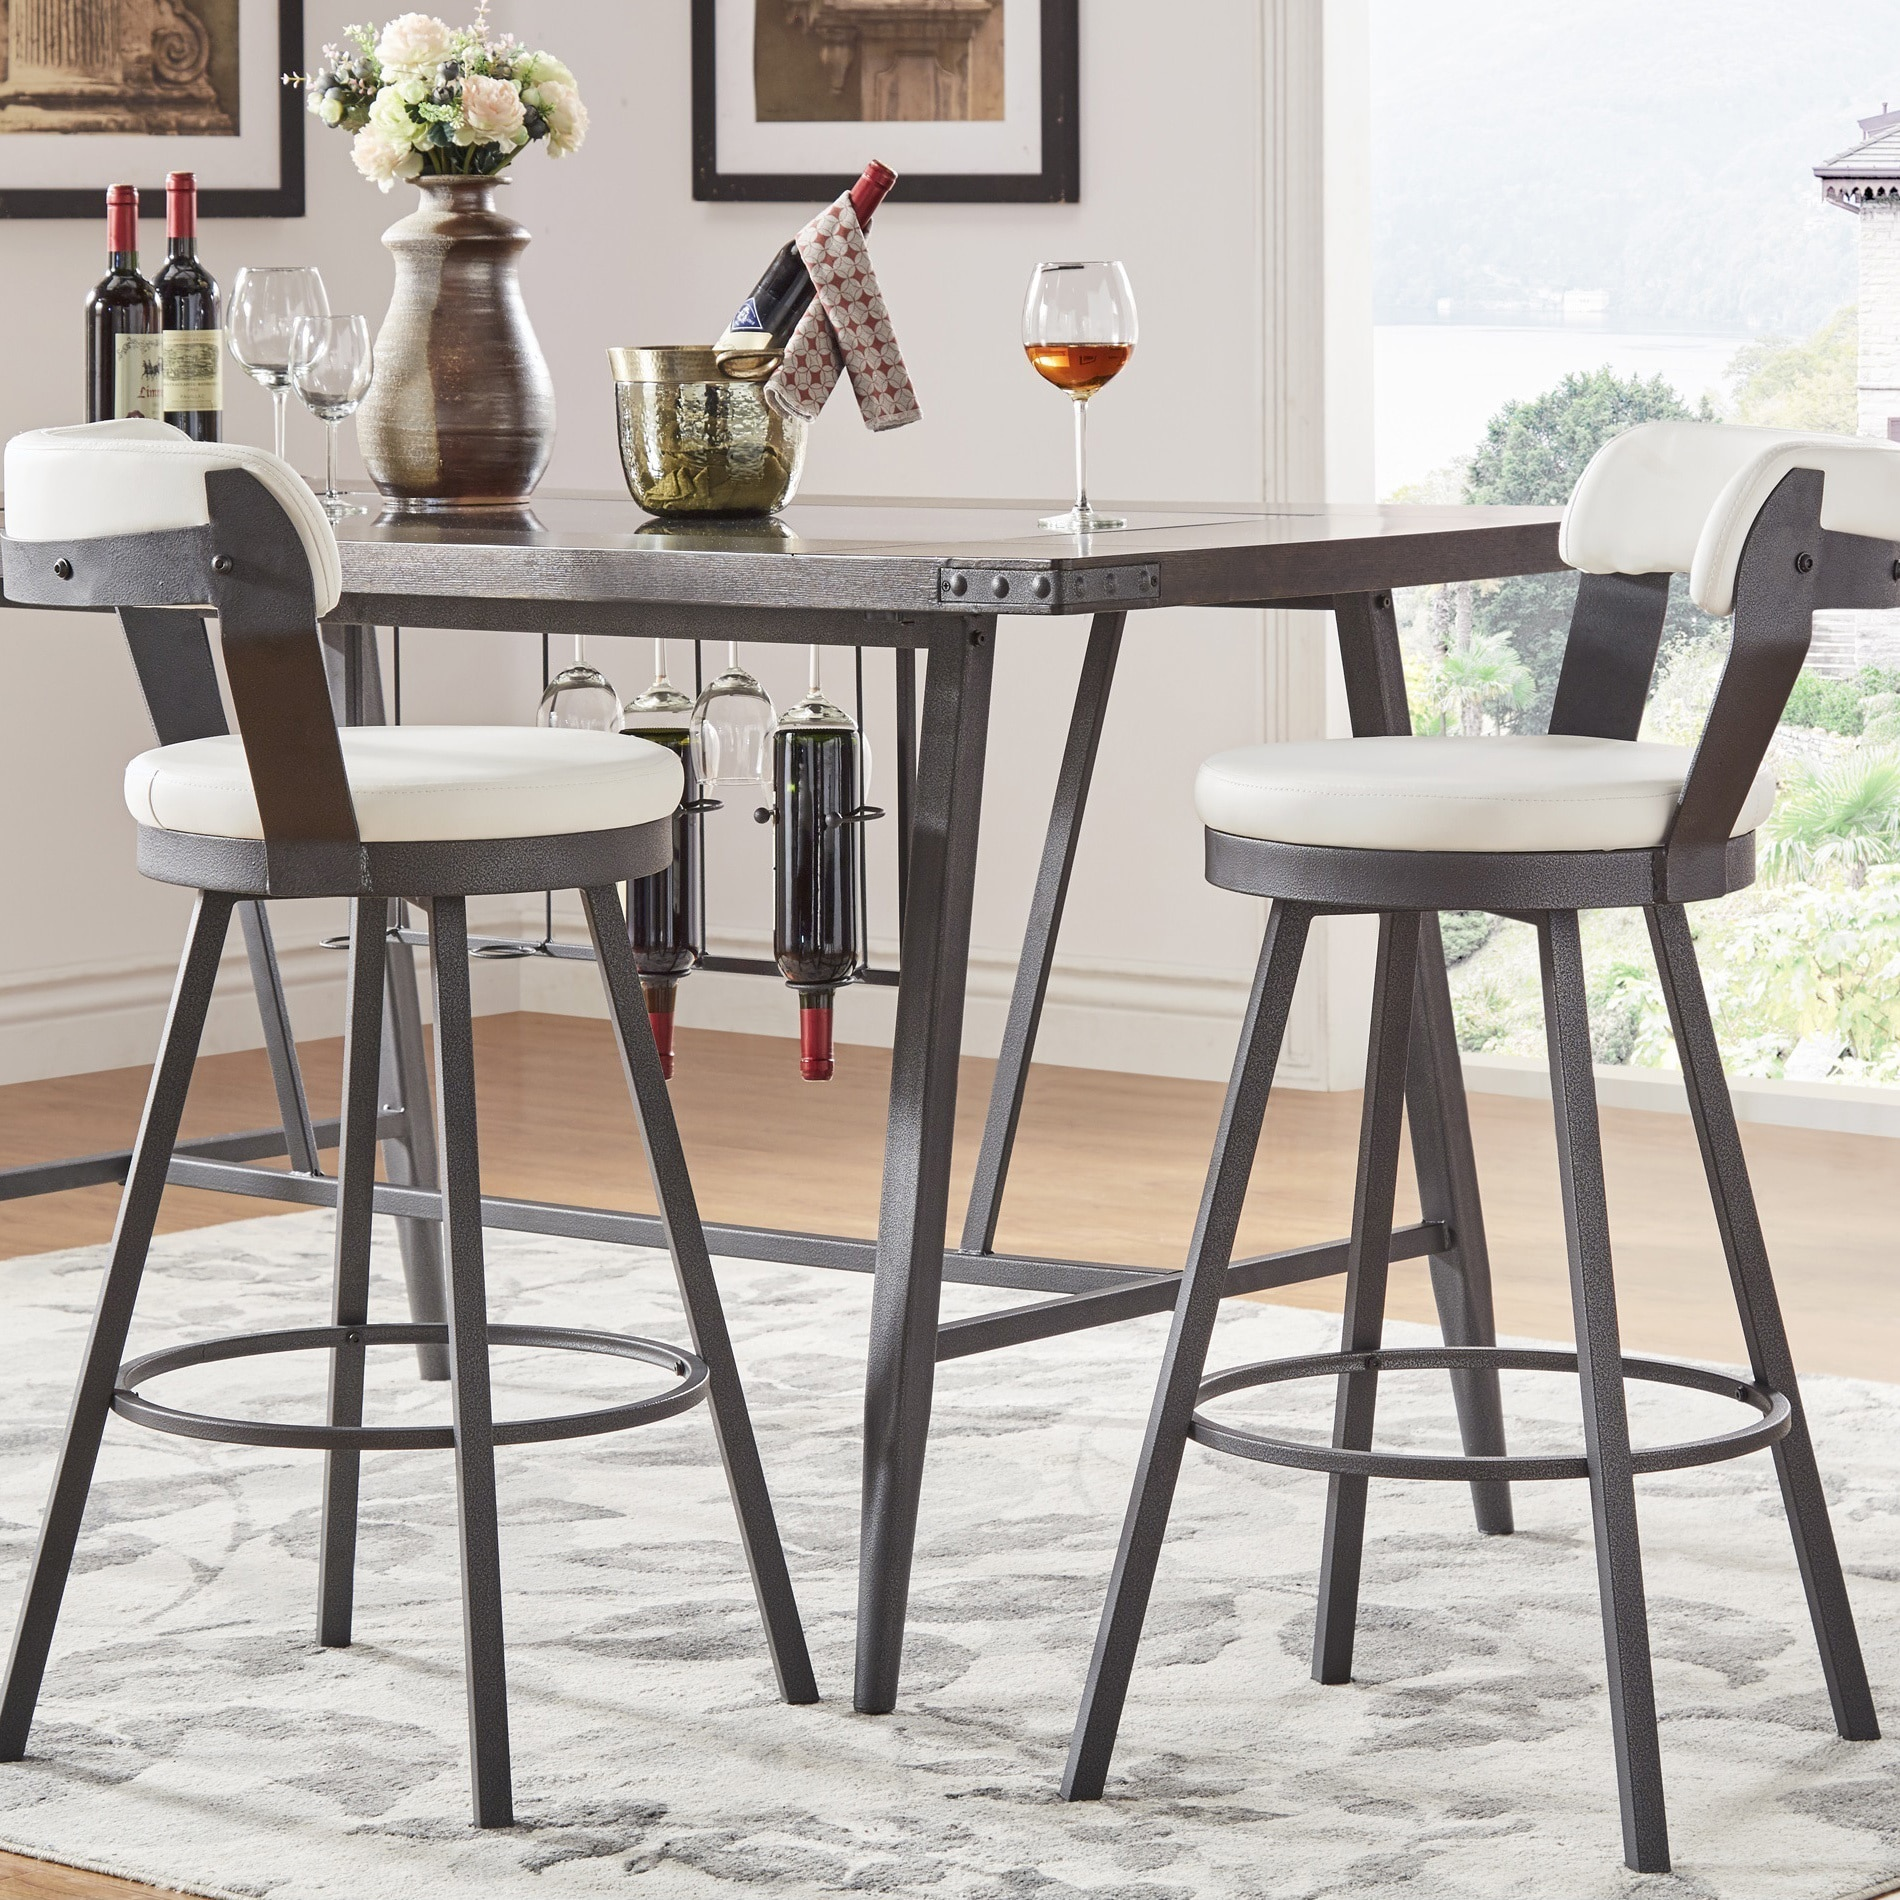 Pleasant Harley Faux Leather And Metal Swivel Stools Set Of 2 By Inspire Q Modern Gmtry Best Dining Table And Chair Ideas Images Gmtryco